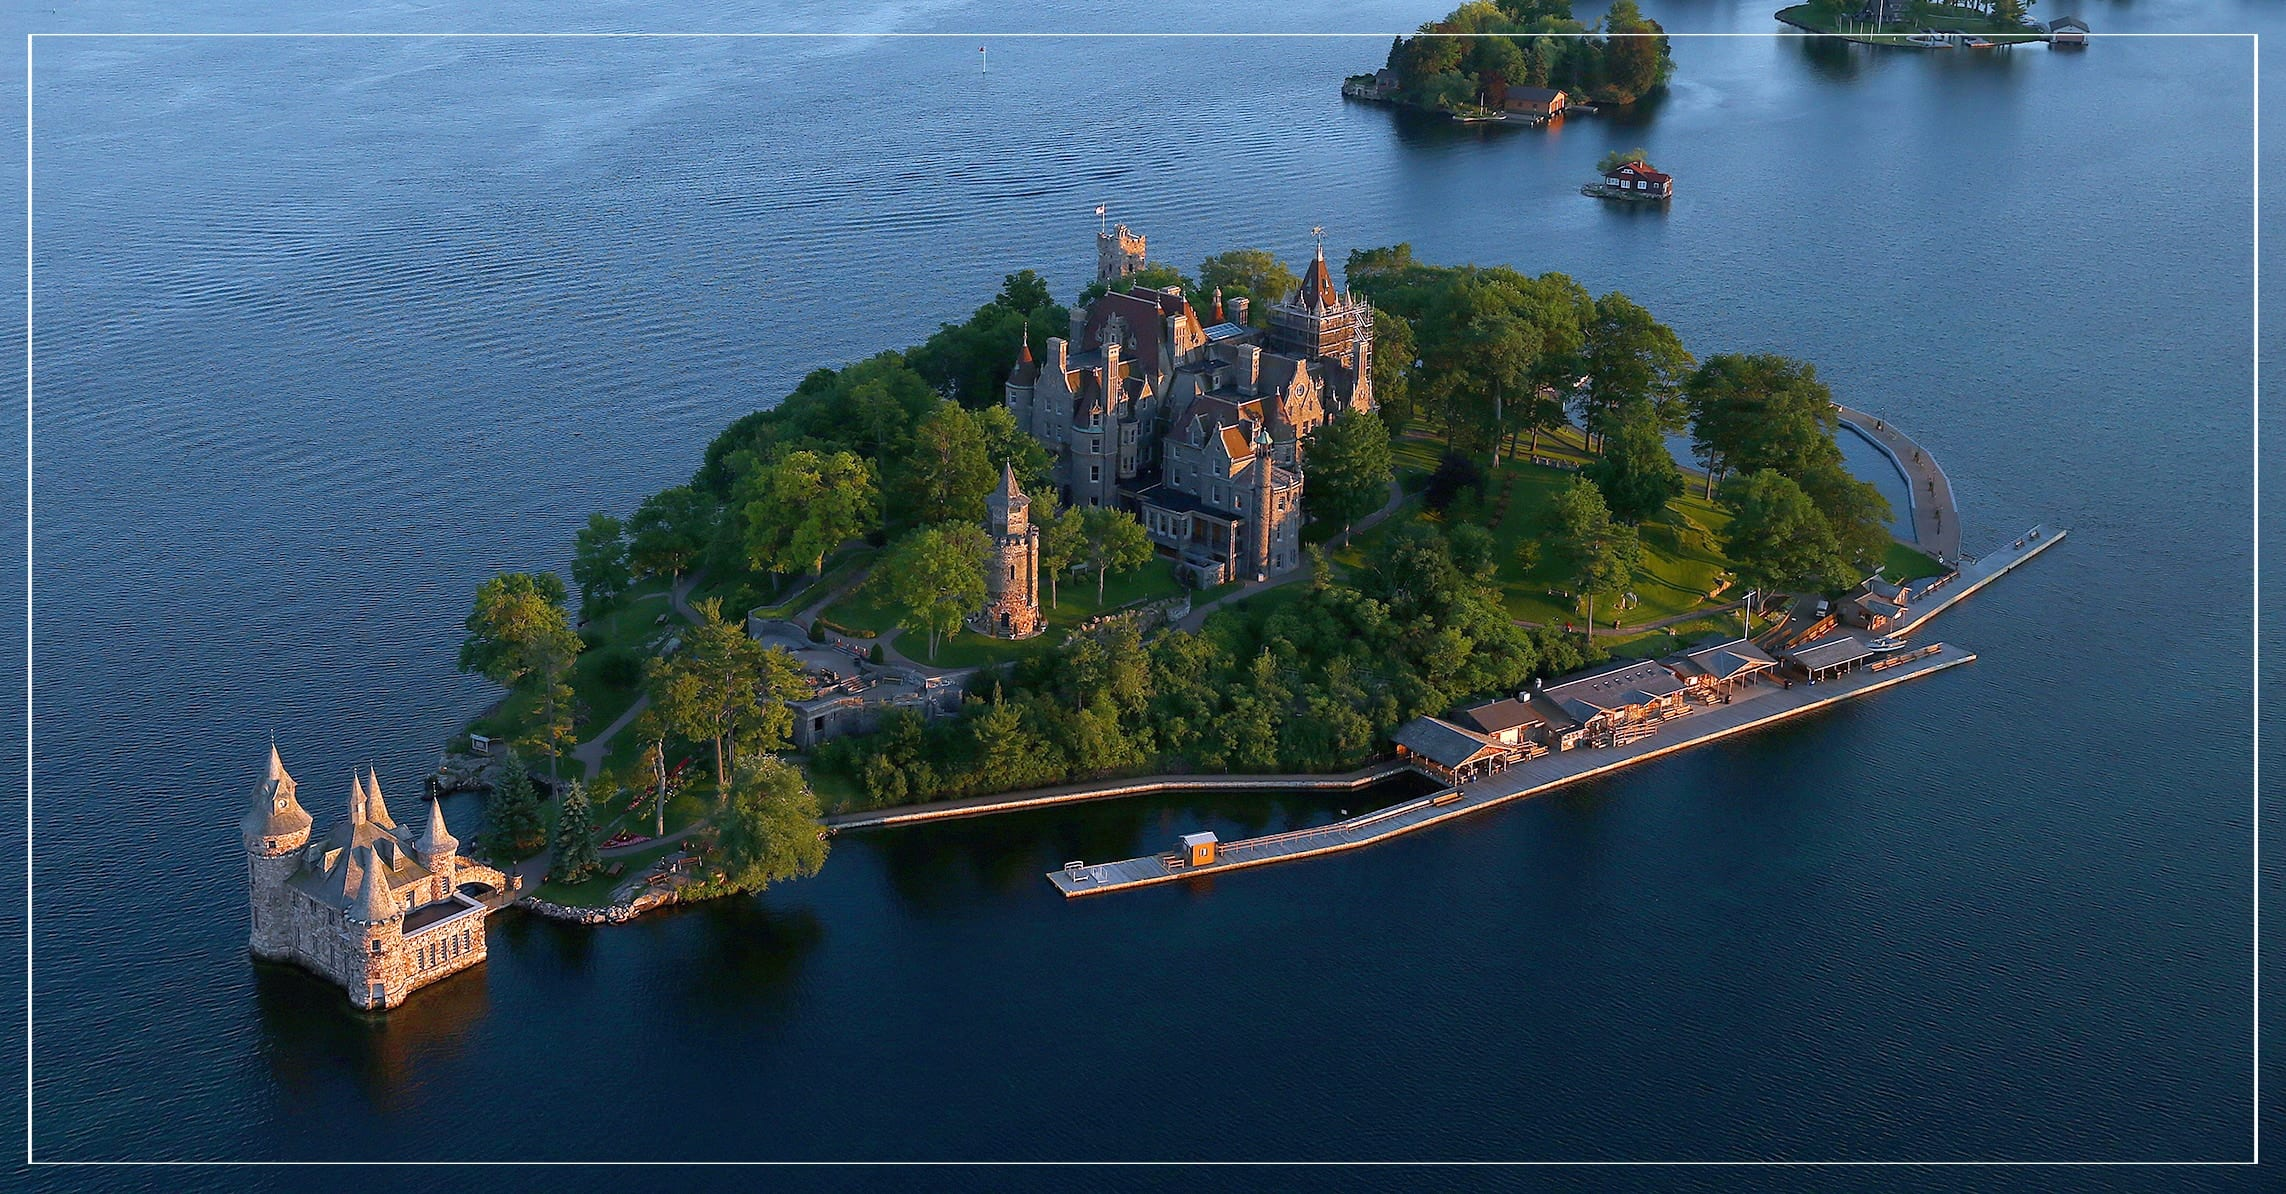 4 ADULT ADMISSION TICKETS <br/> Donated by: 1000 ISLANDS BRIDGE AUTHORITY/BOLDT CASTLE <br/> Valued at: $58